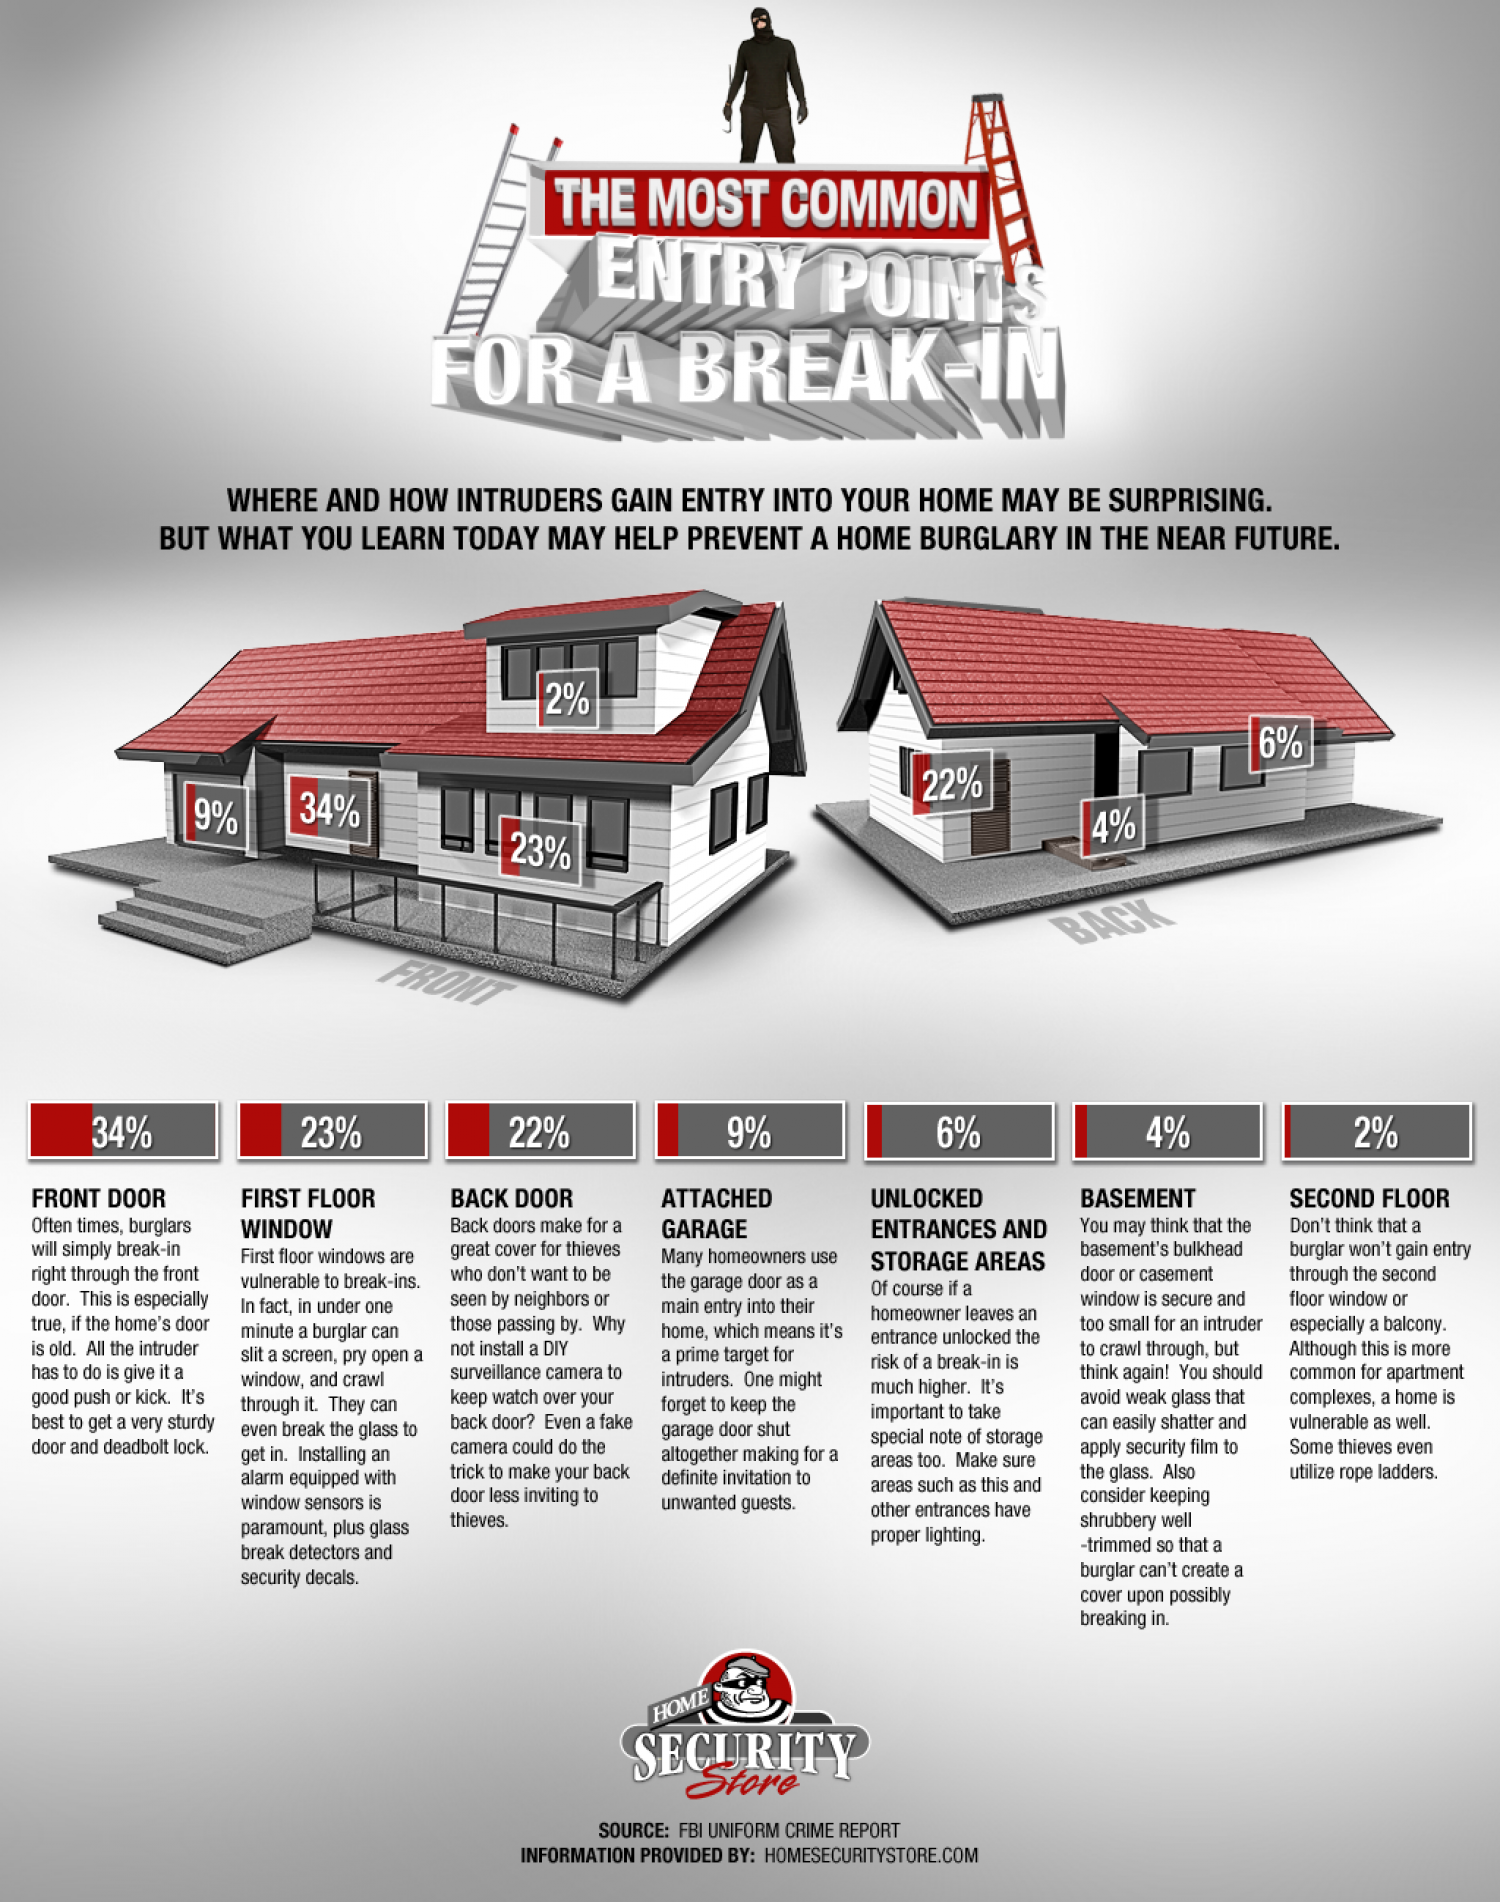 The Most Common Entry Points For a Break-In Infographic